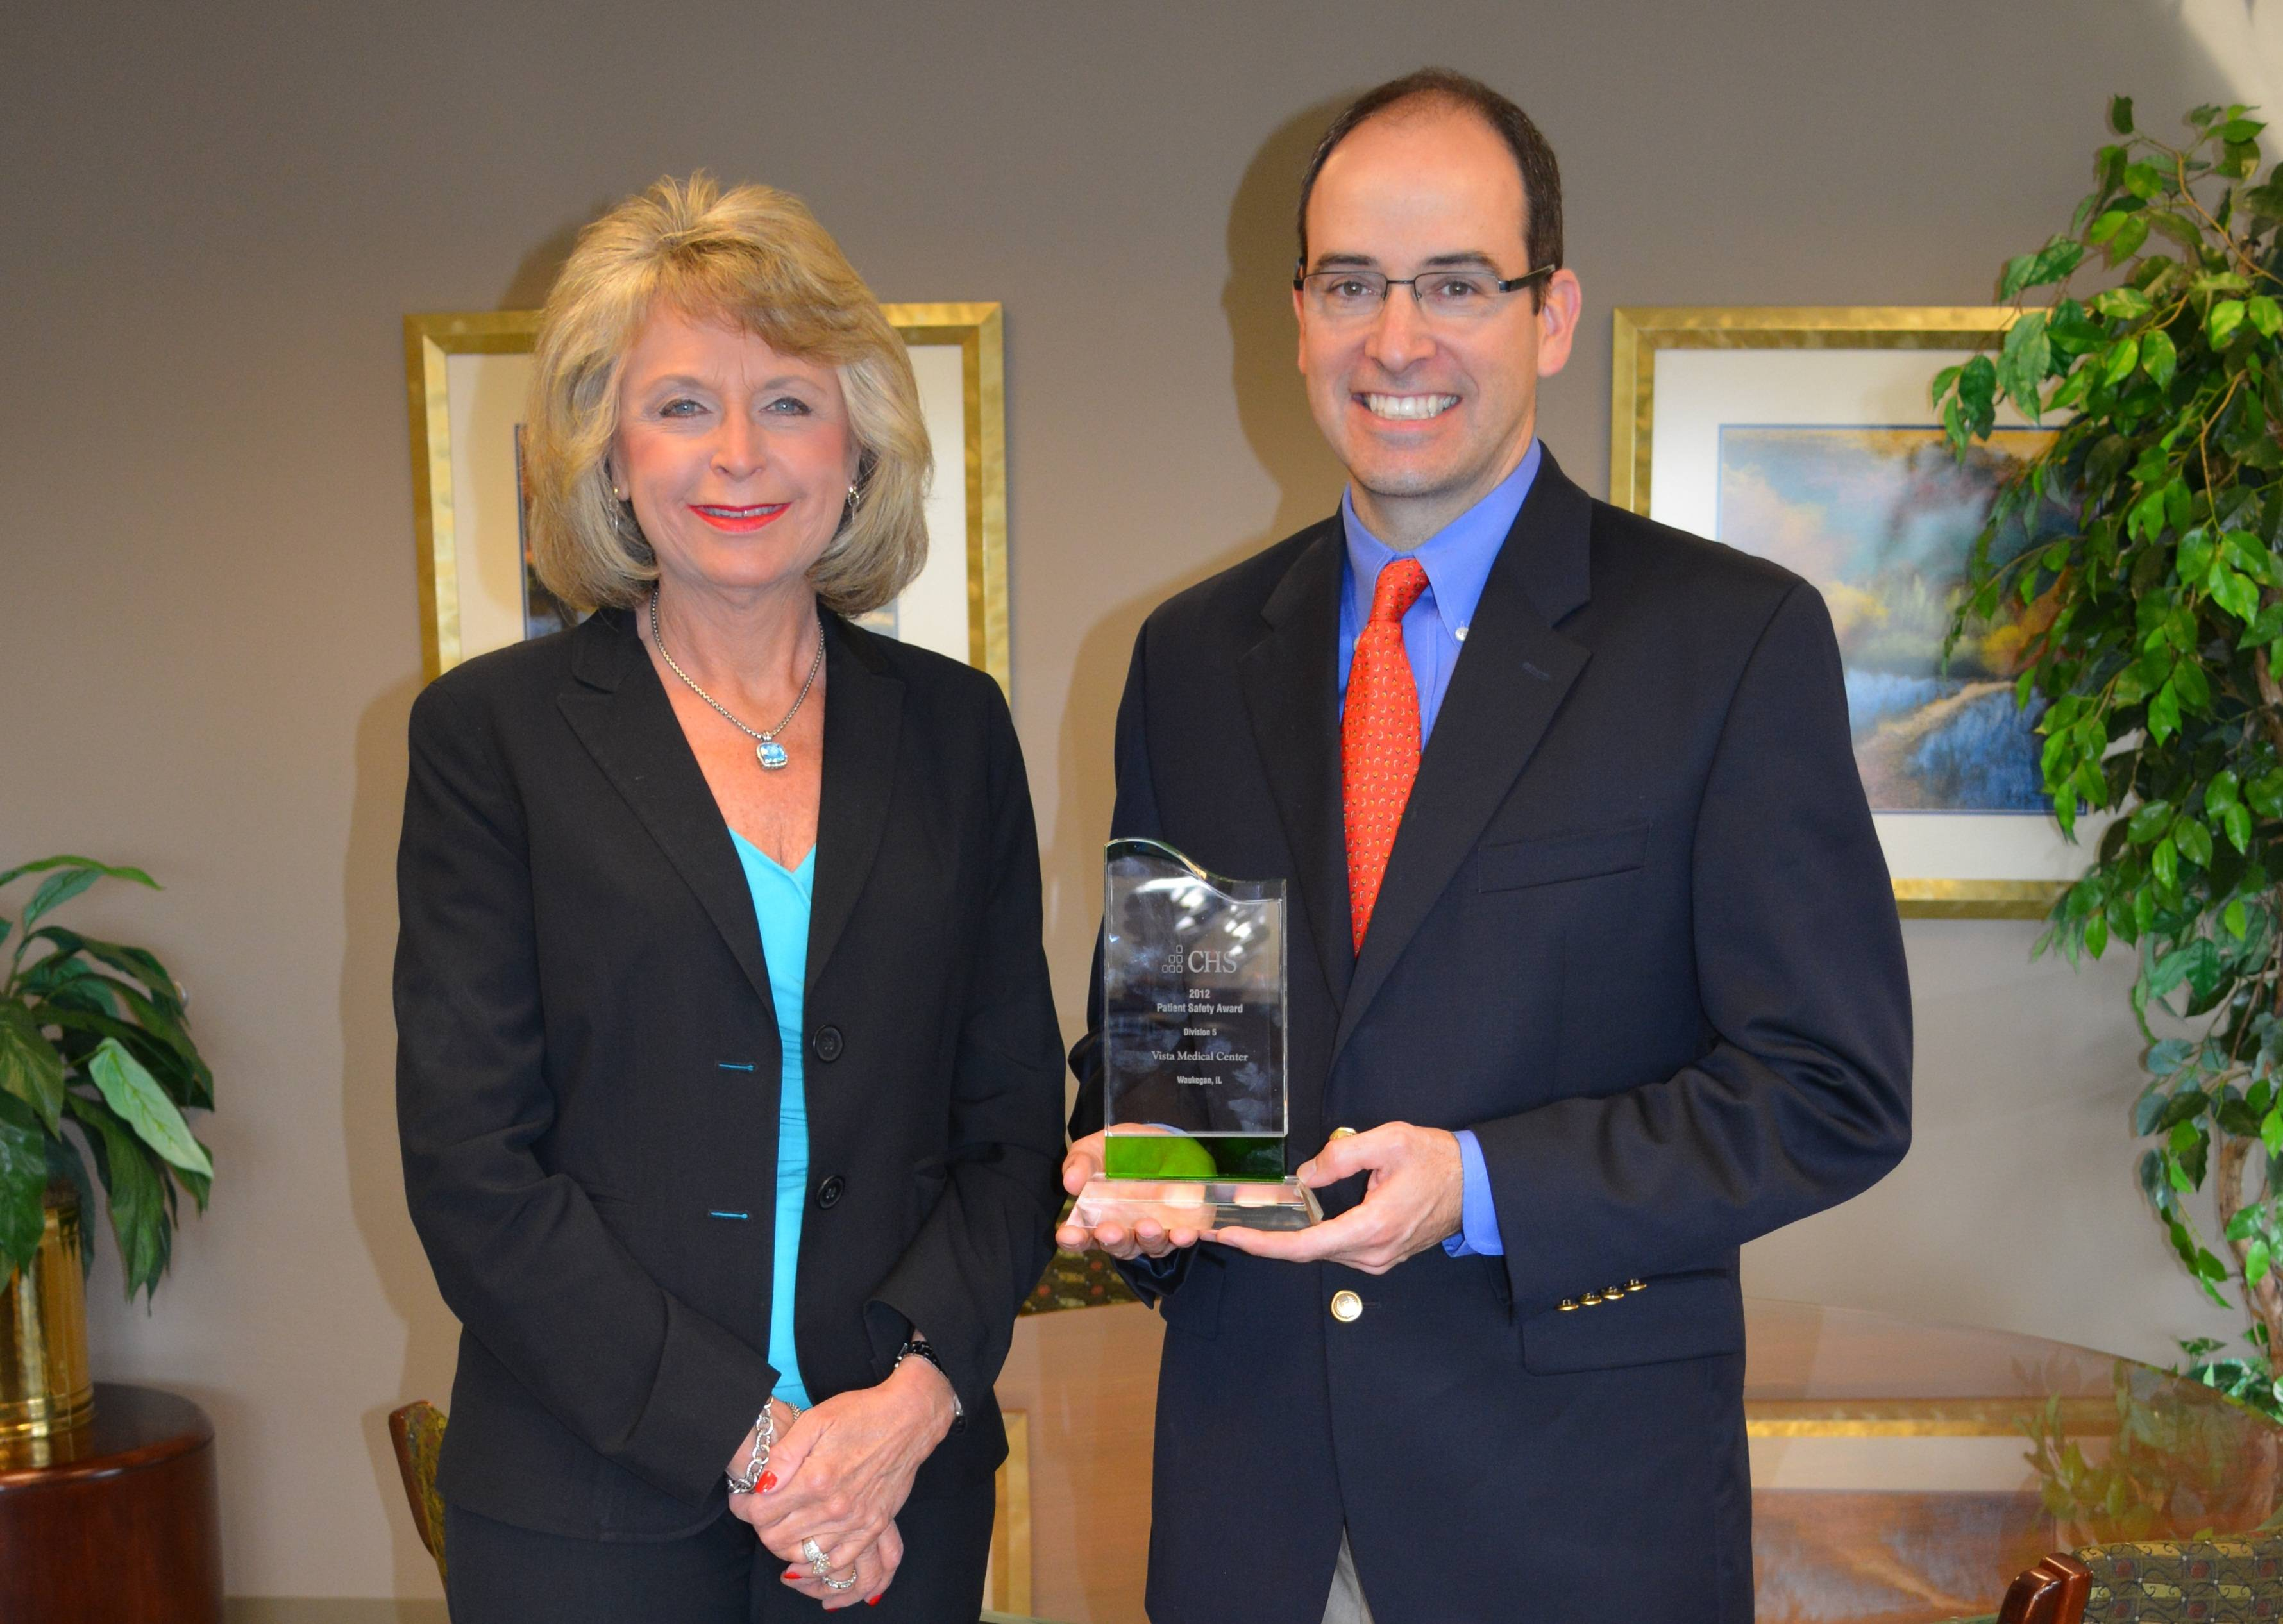 Vista CEO Barbara Martin with Dr. John Devaney, president-elect of the Vista Medical Staff